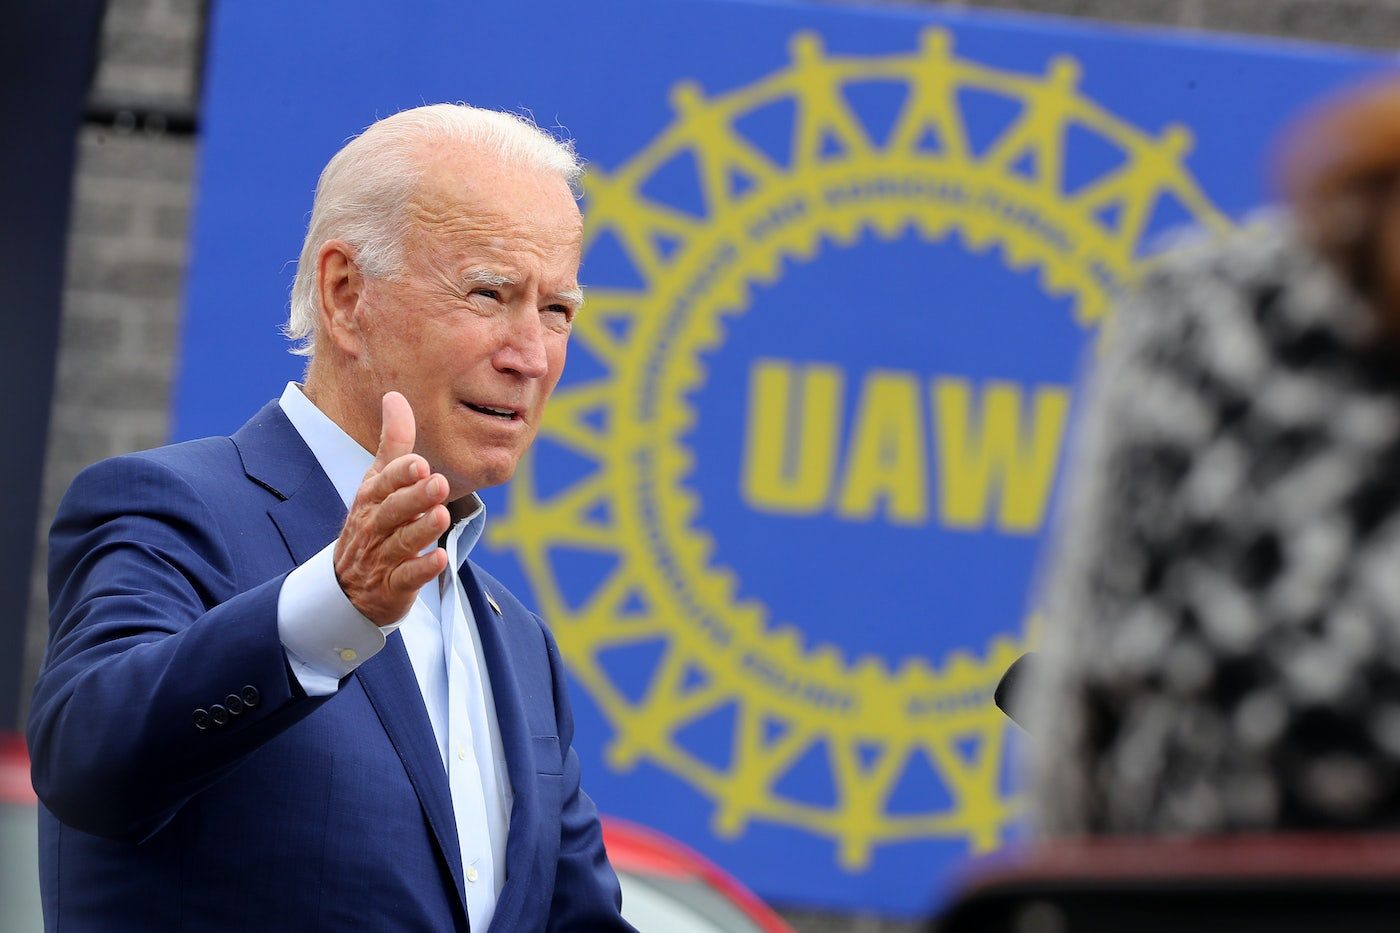 Democratic presidential nominee and former Vice President Joe Biden delivers remarks in the parking lot outside the United Auto Workers Region 1 offices on September 09, 2020